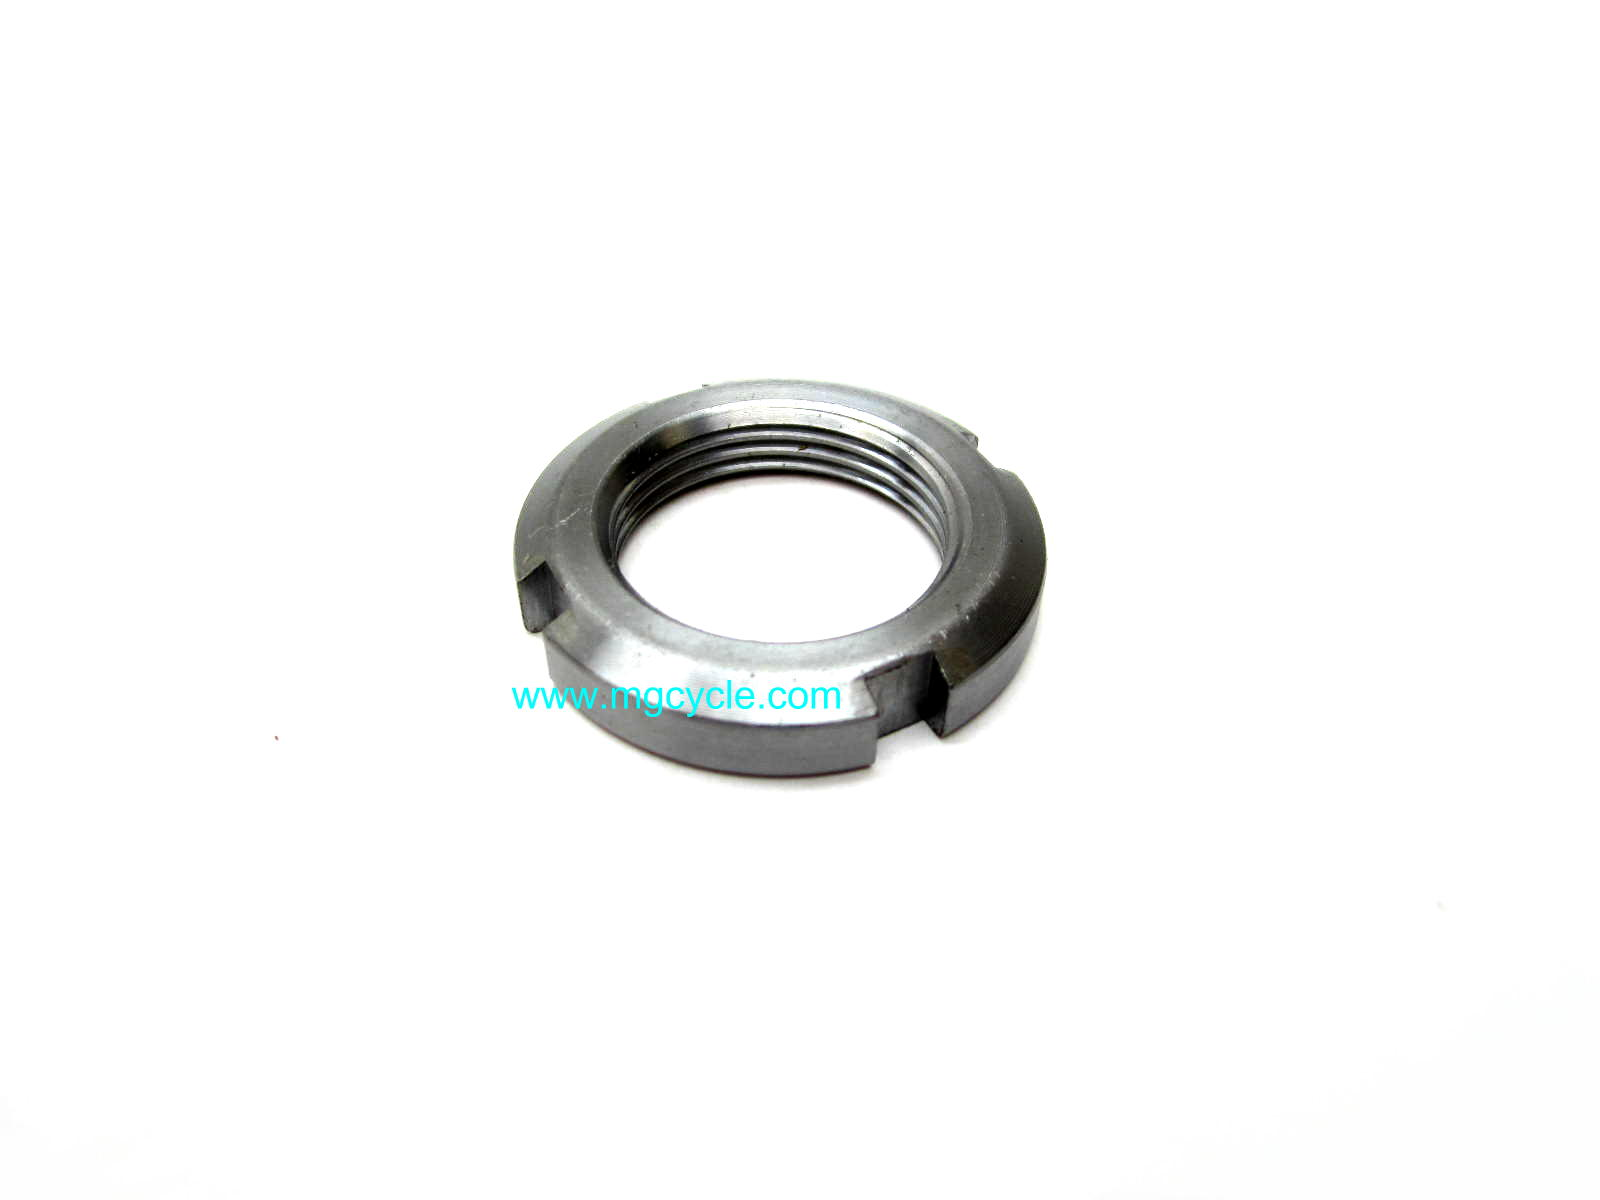 Ring nut for crankshaft, final drive, steering head, clutch hub